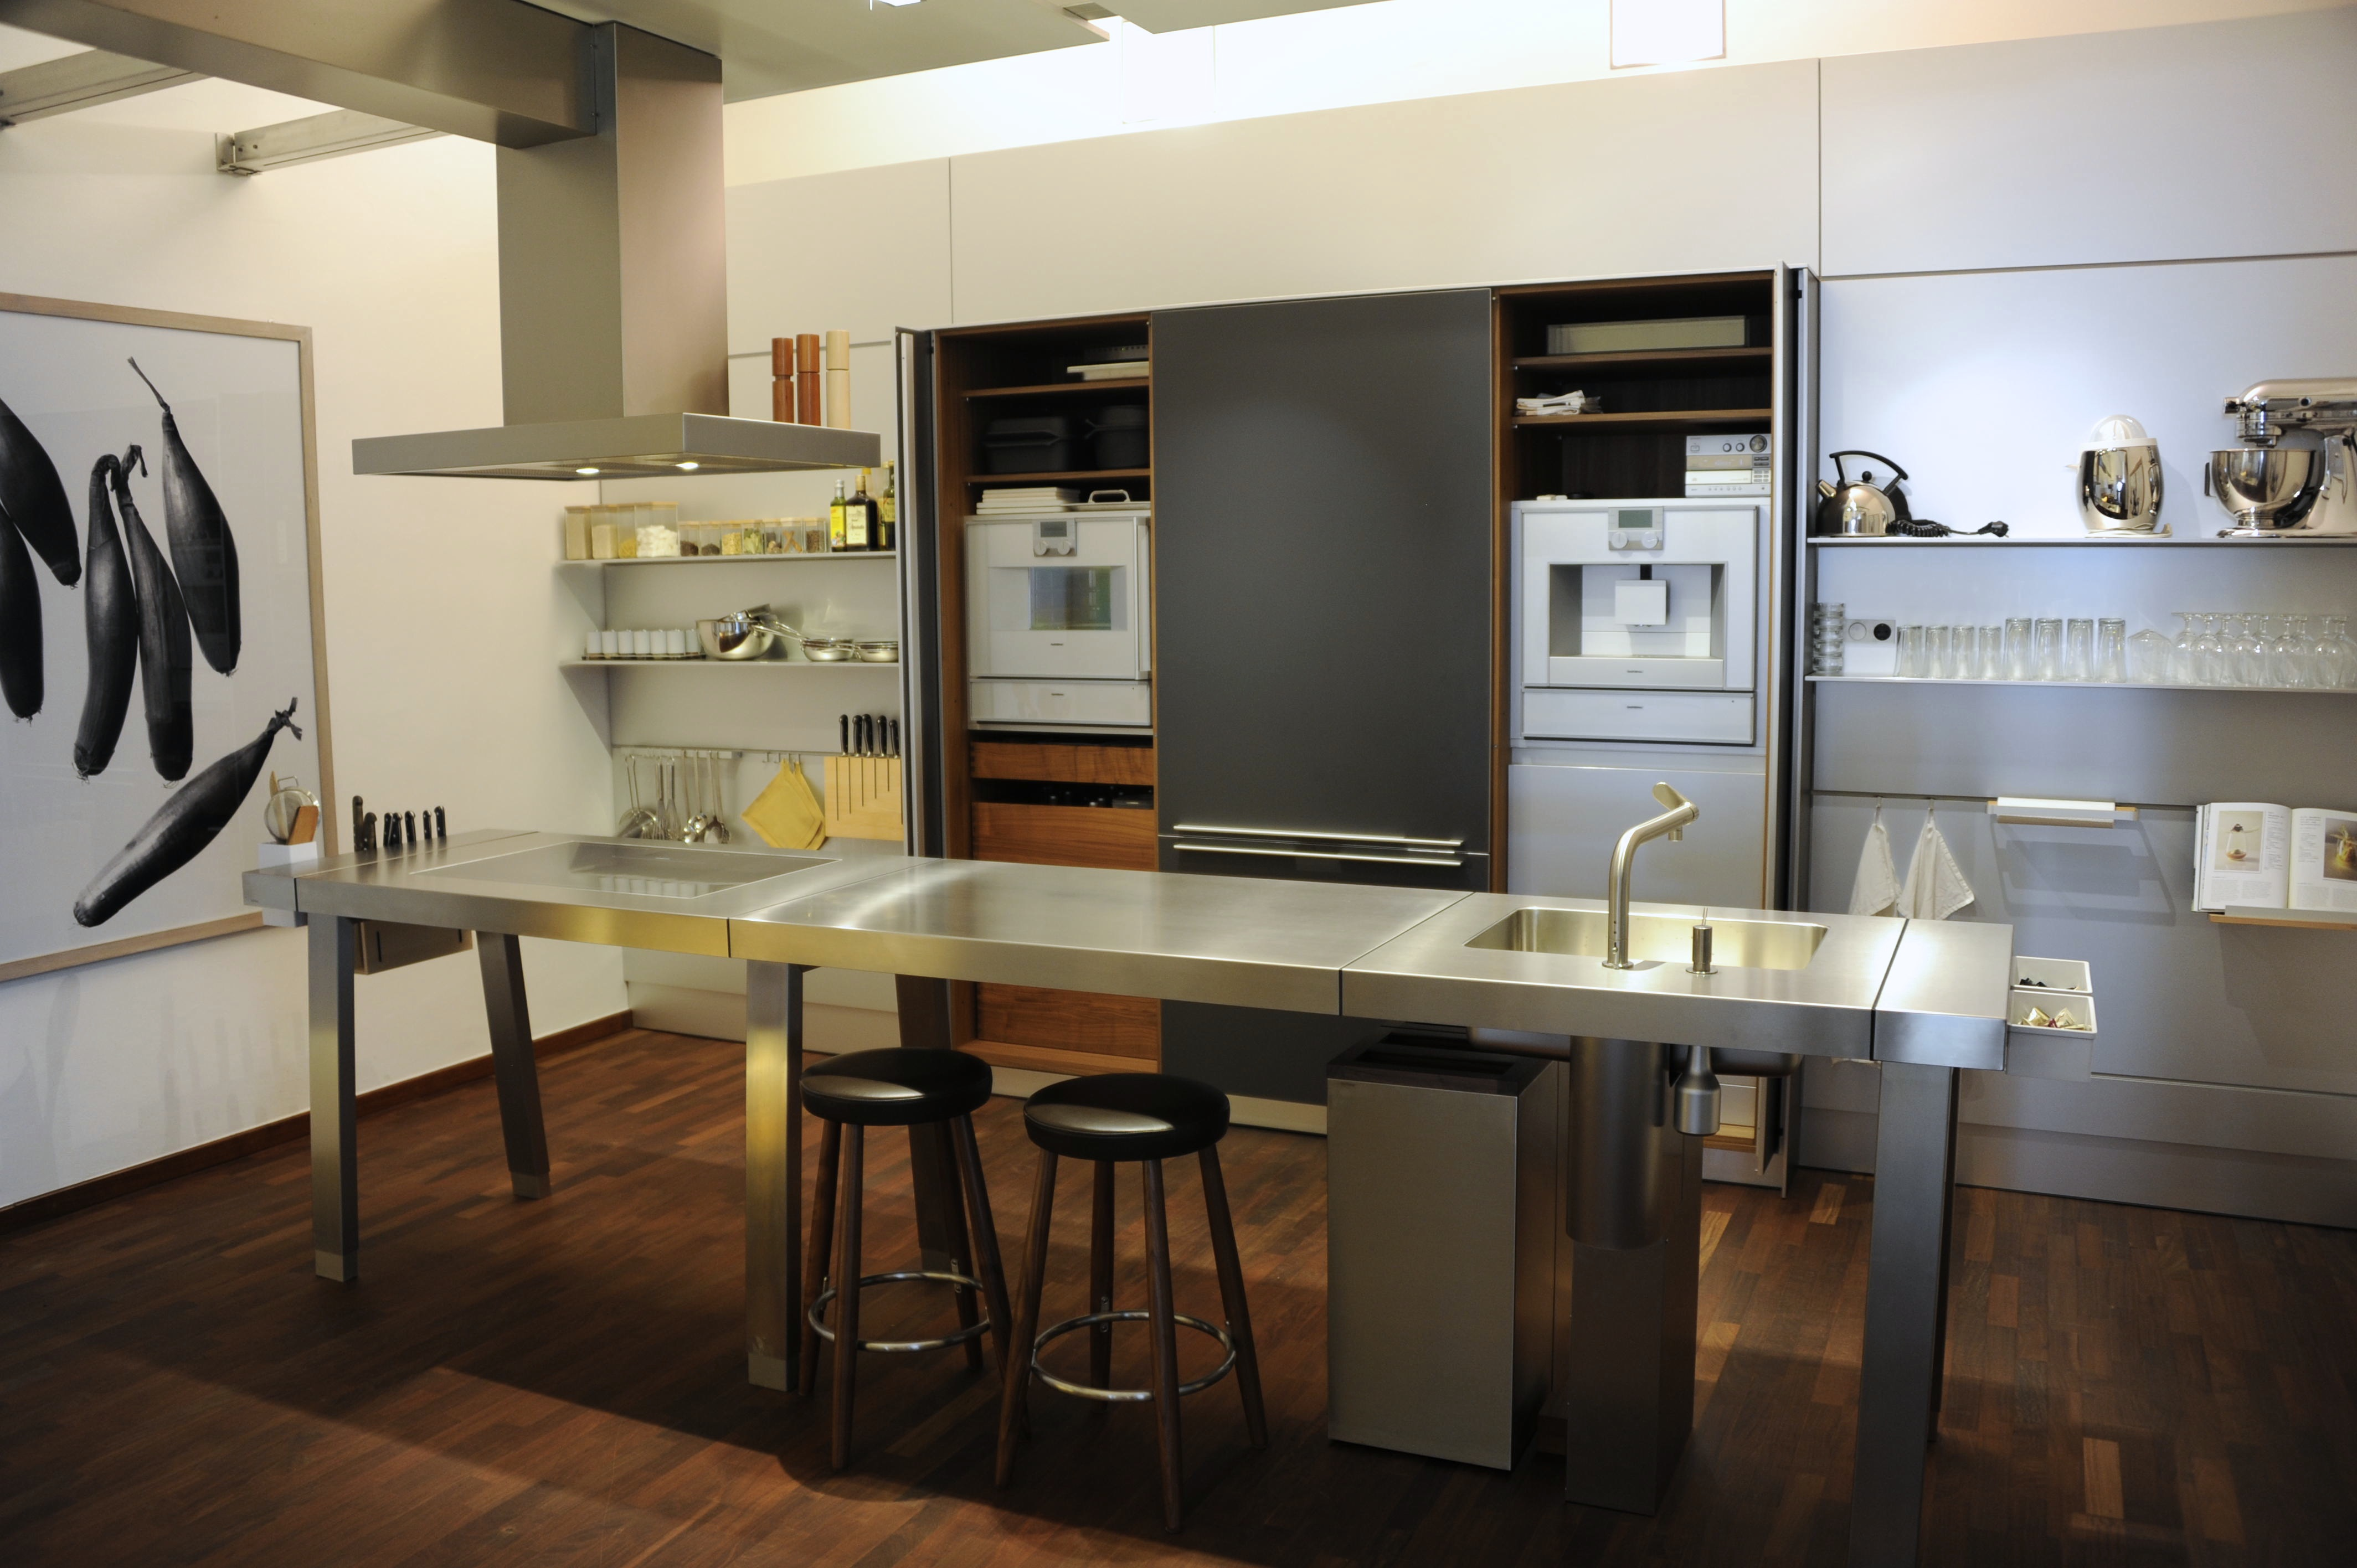 Modernist kitchen design showrooms jet city gastrophysics for Kitchen setup